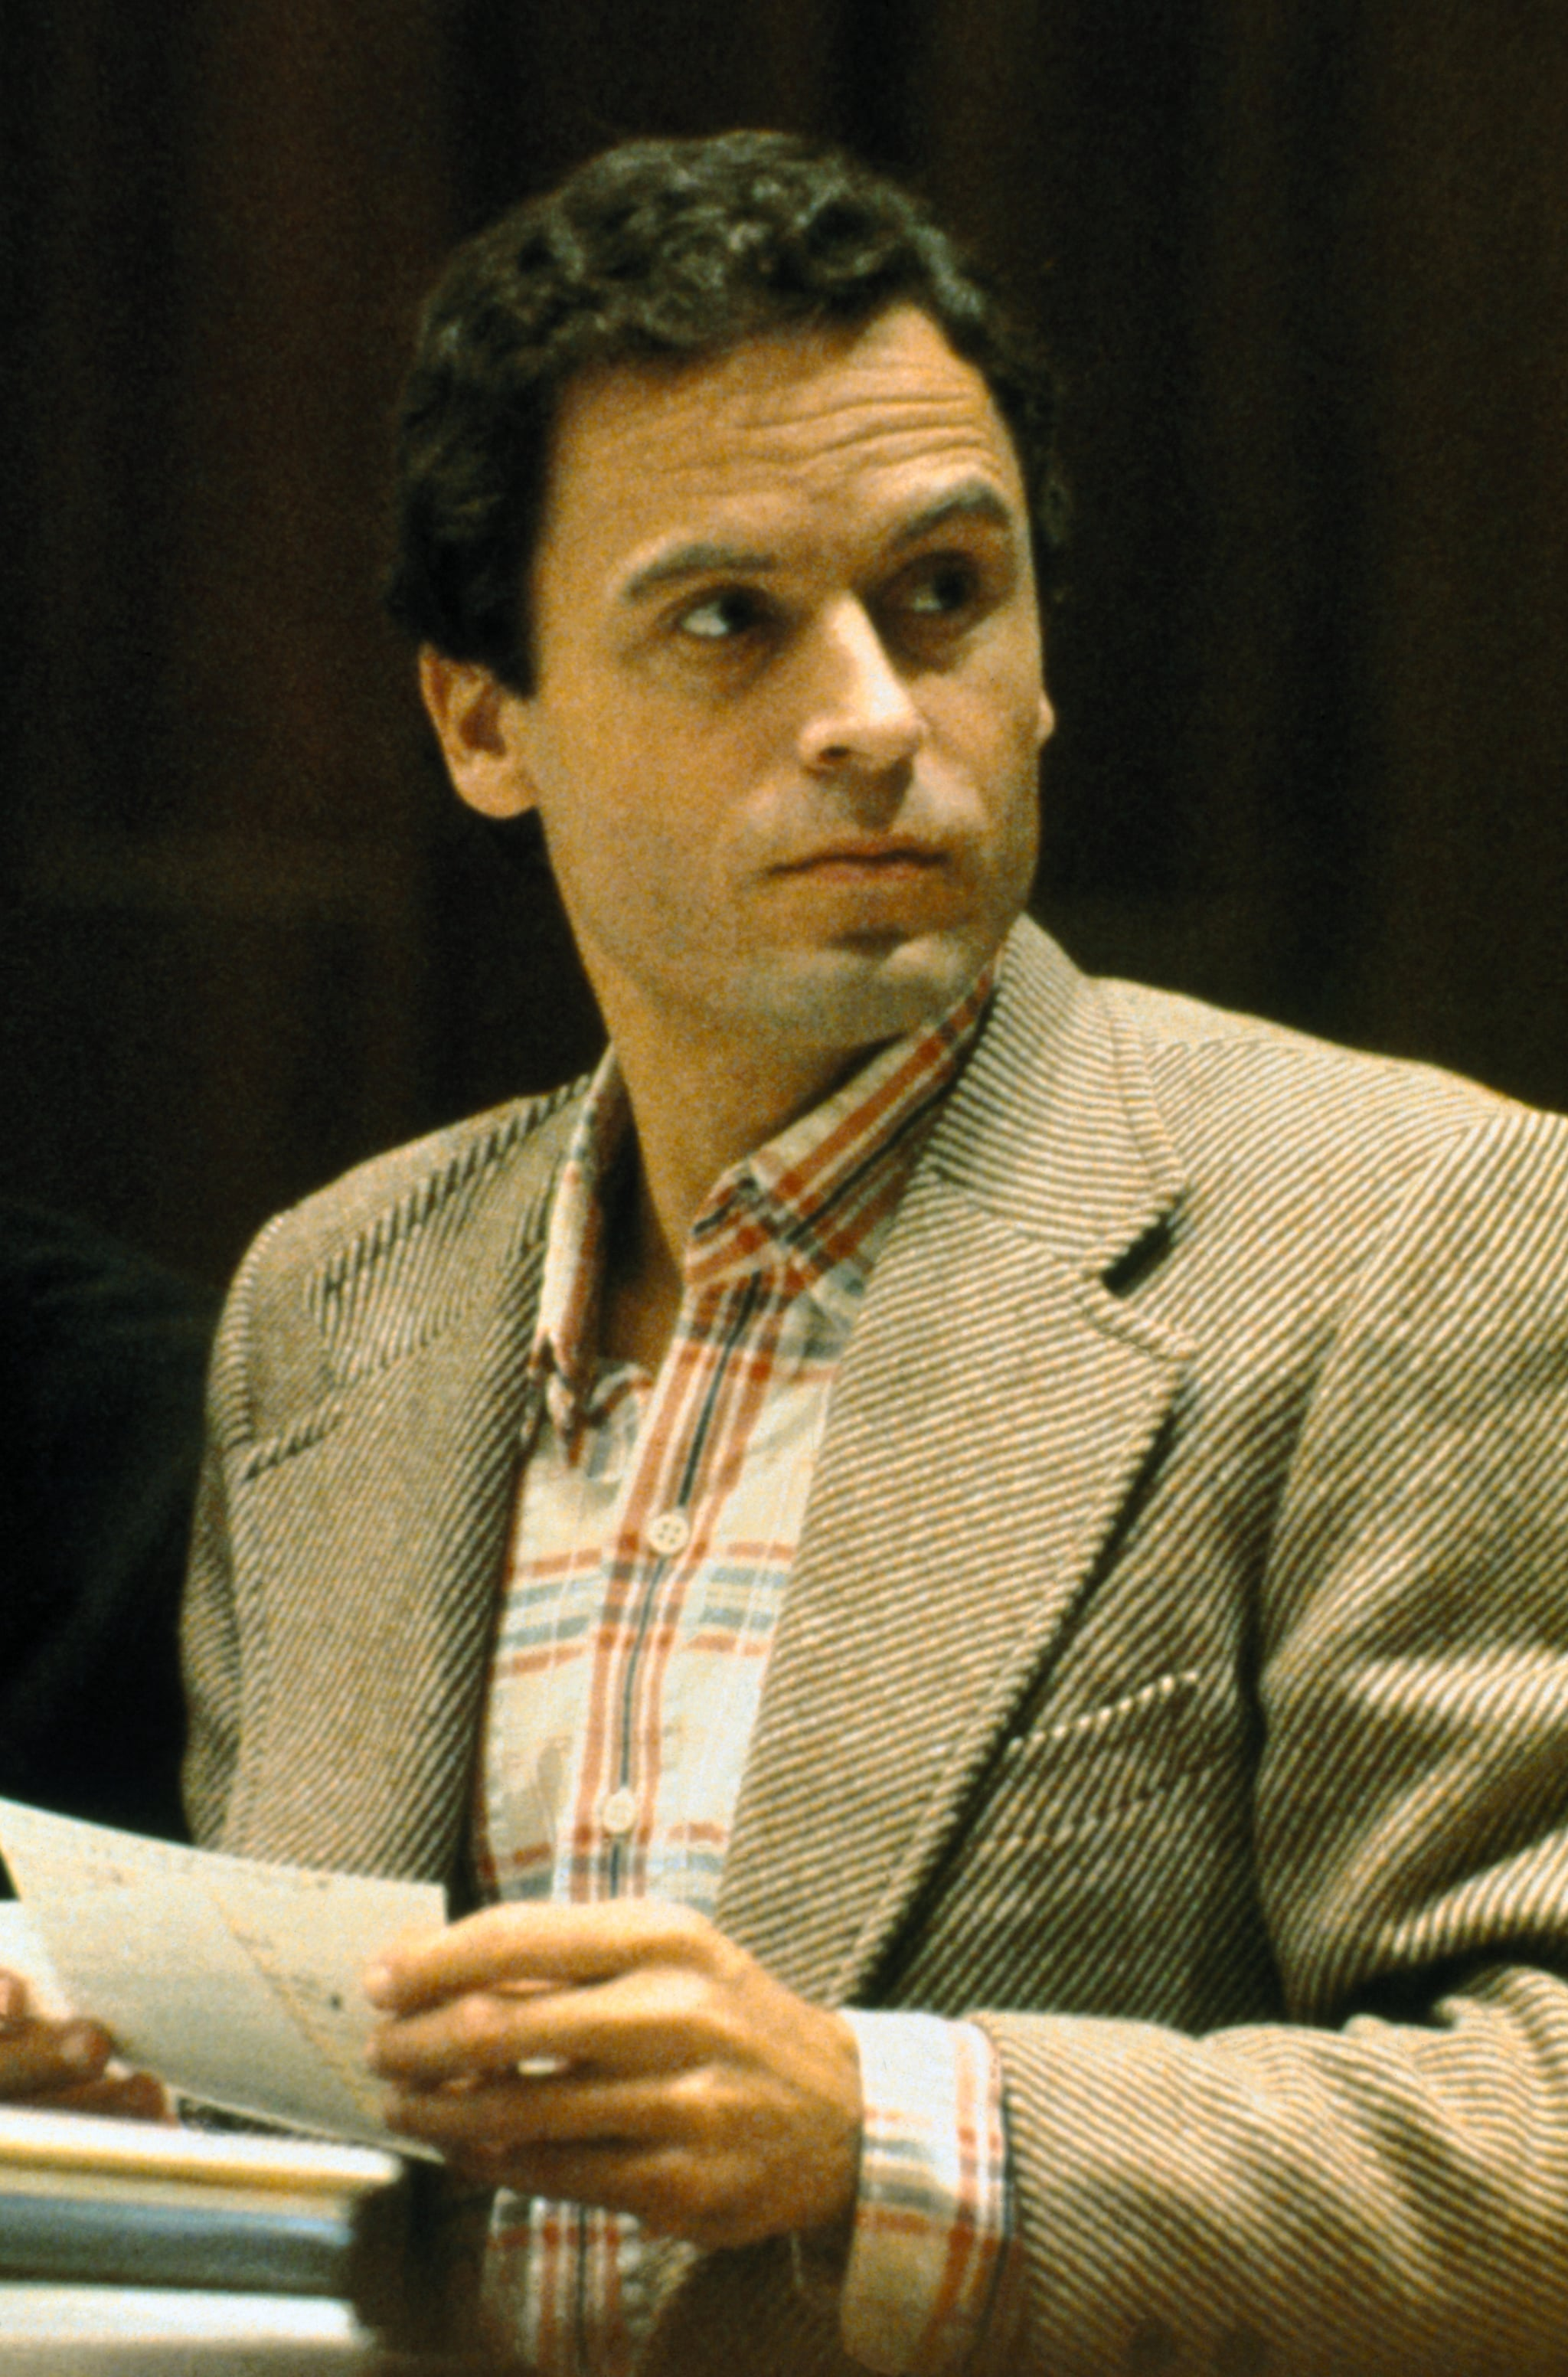 (Original Caption) Close up of Theodore Bundy, convicted Florida murderer, charged with other killings.